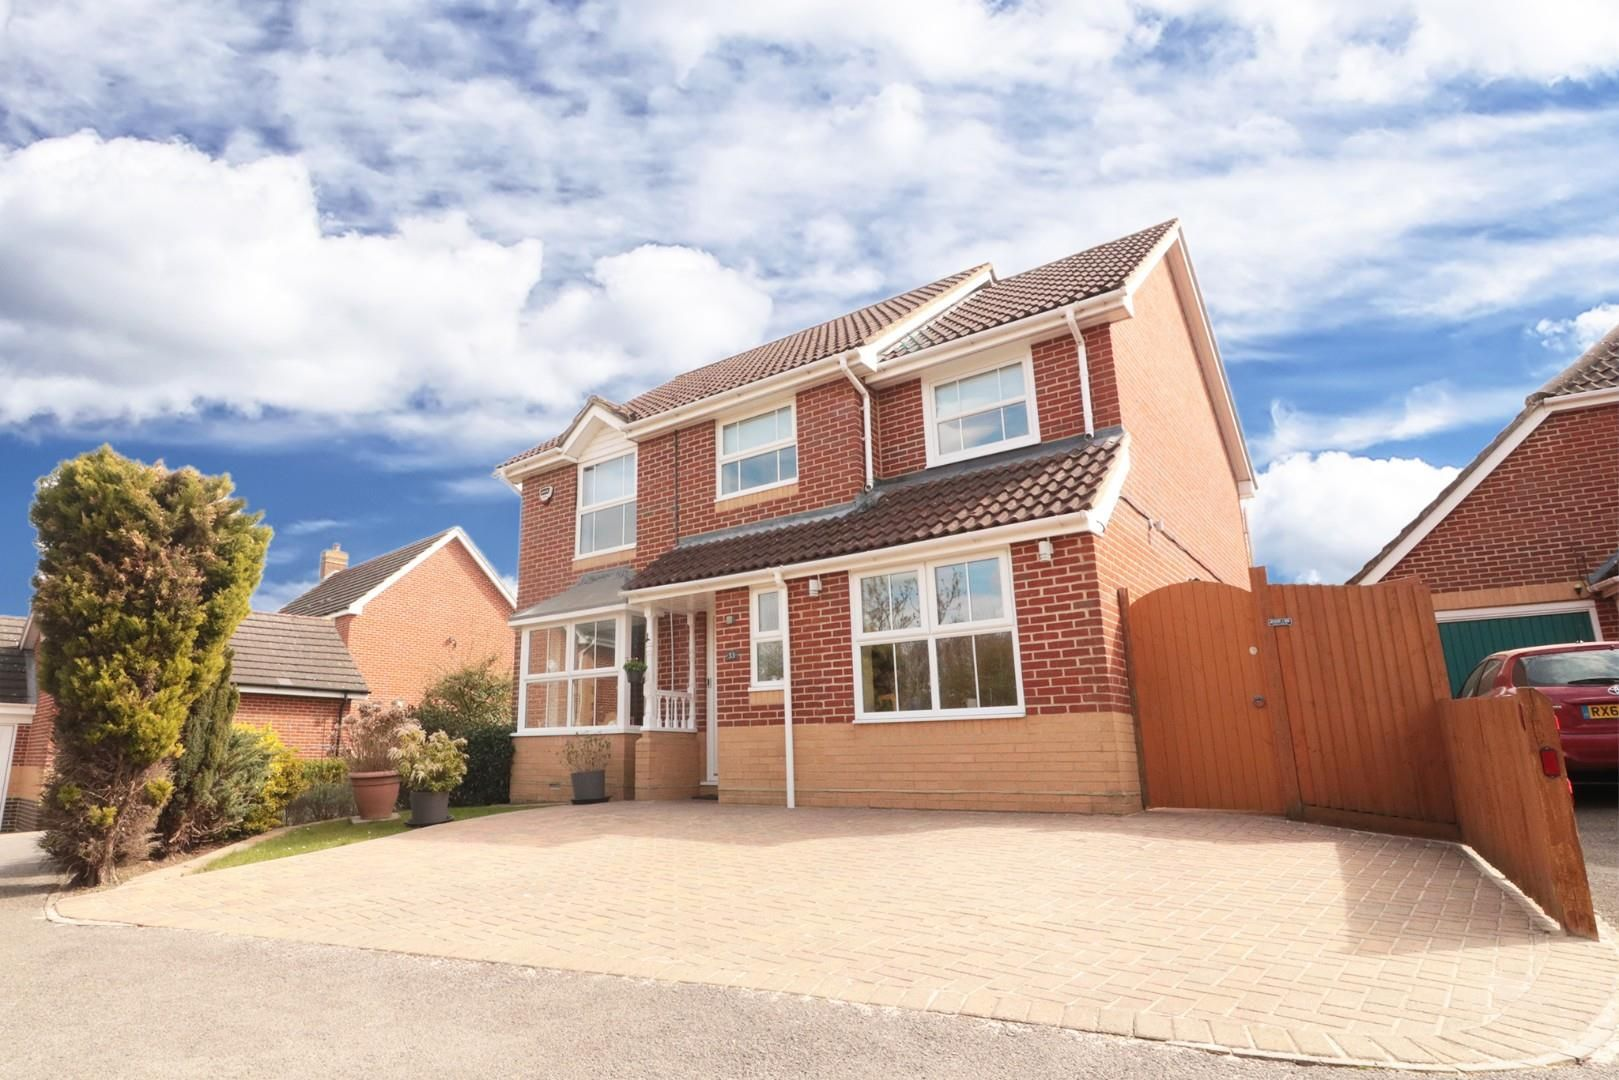 4 bed detached for sale in Binfield - Property Image 1